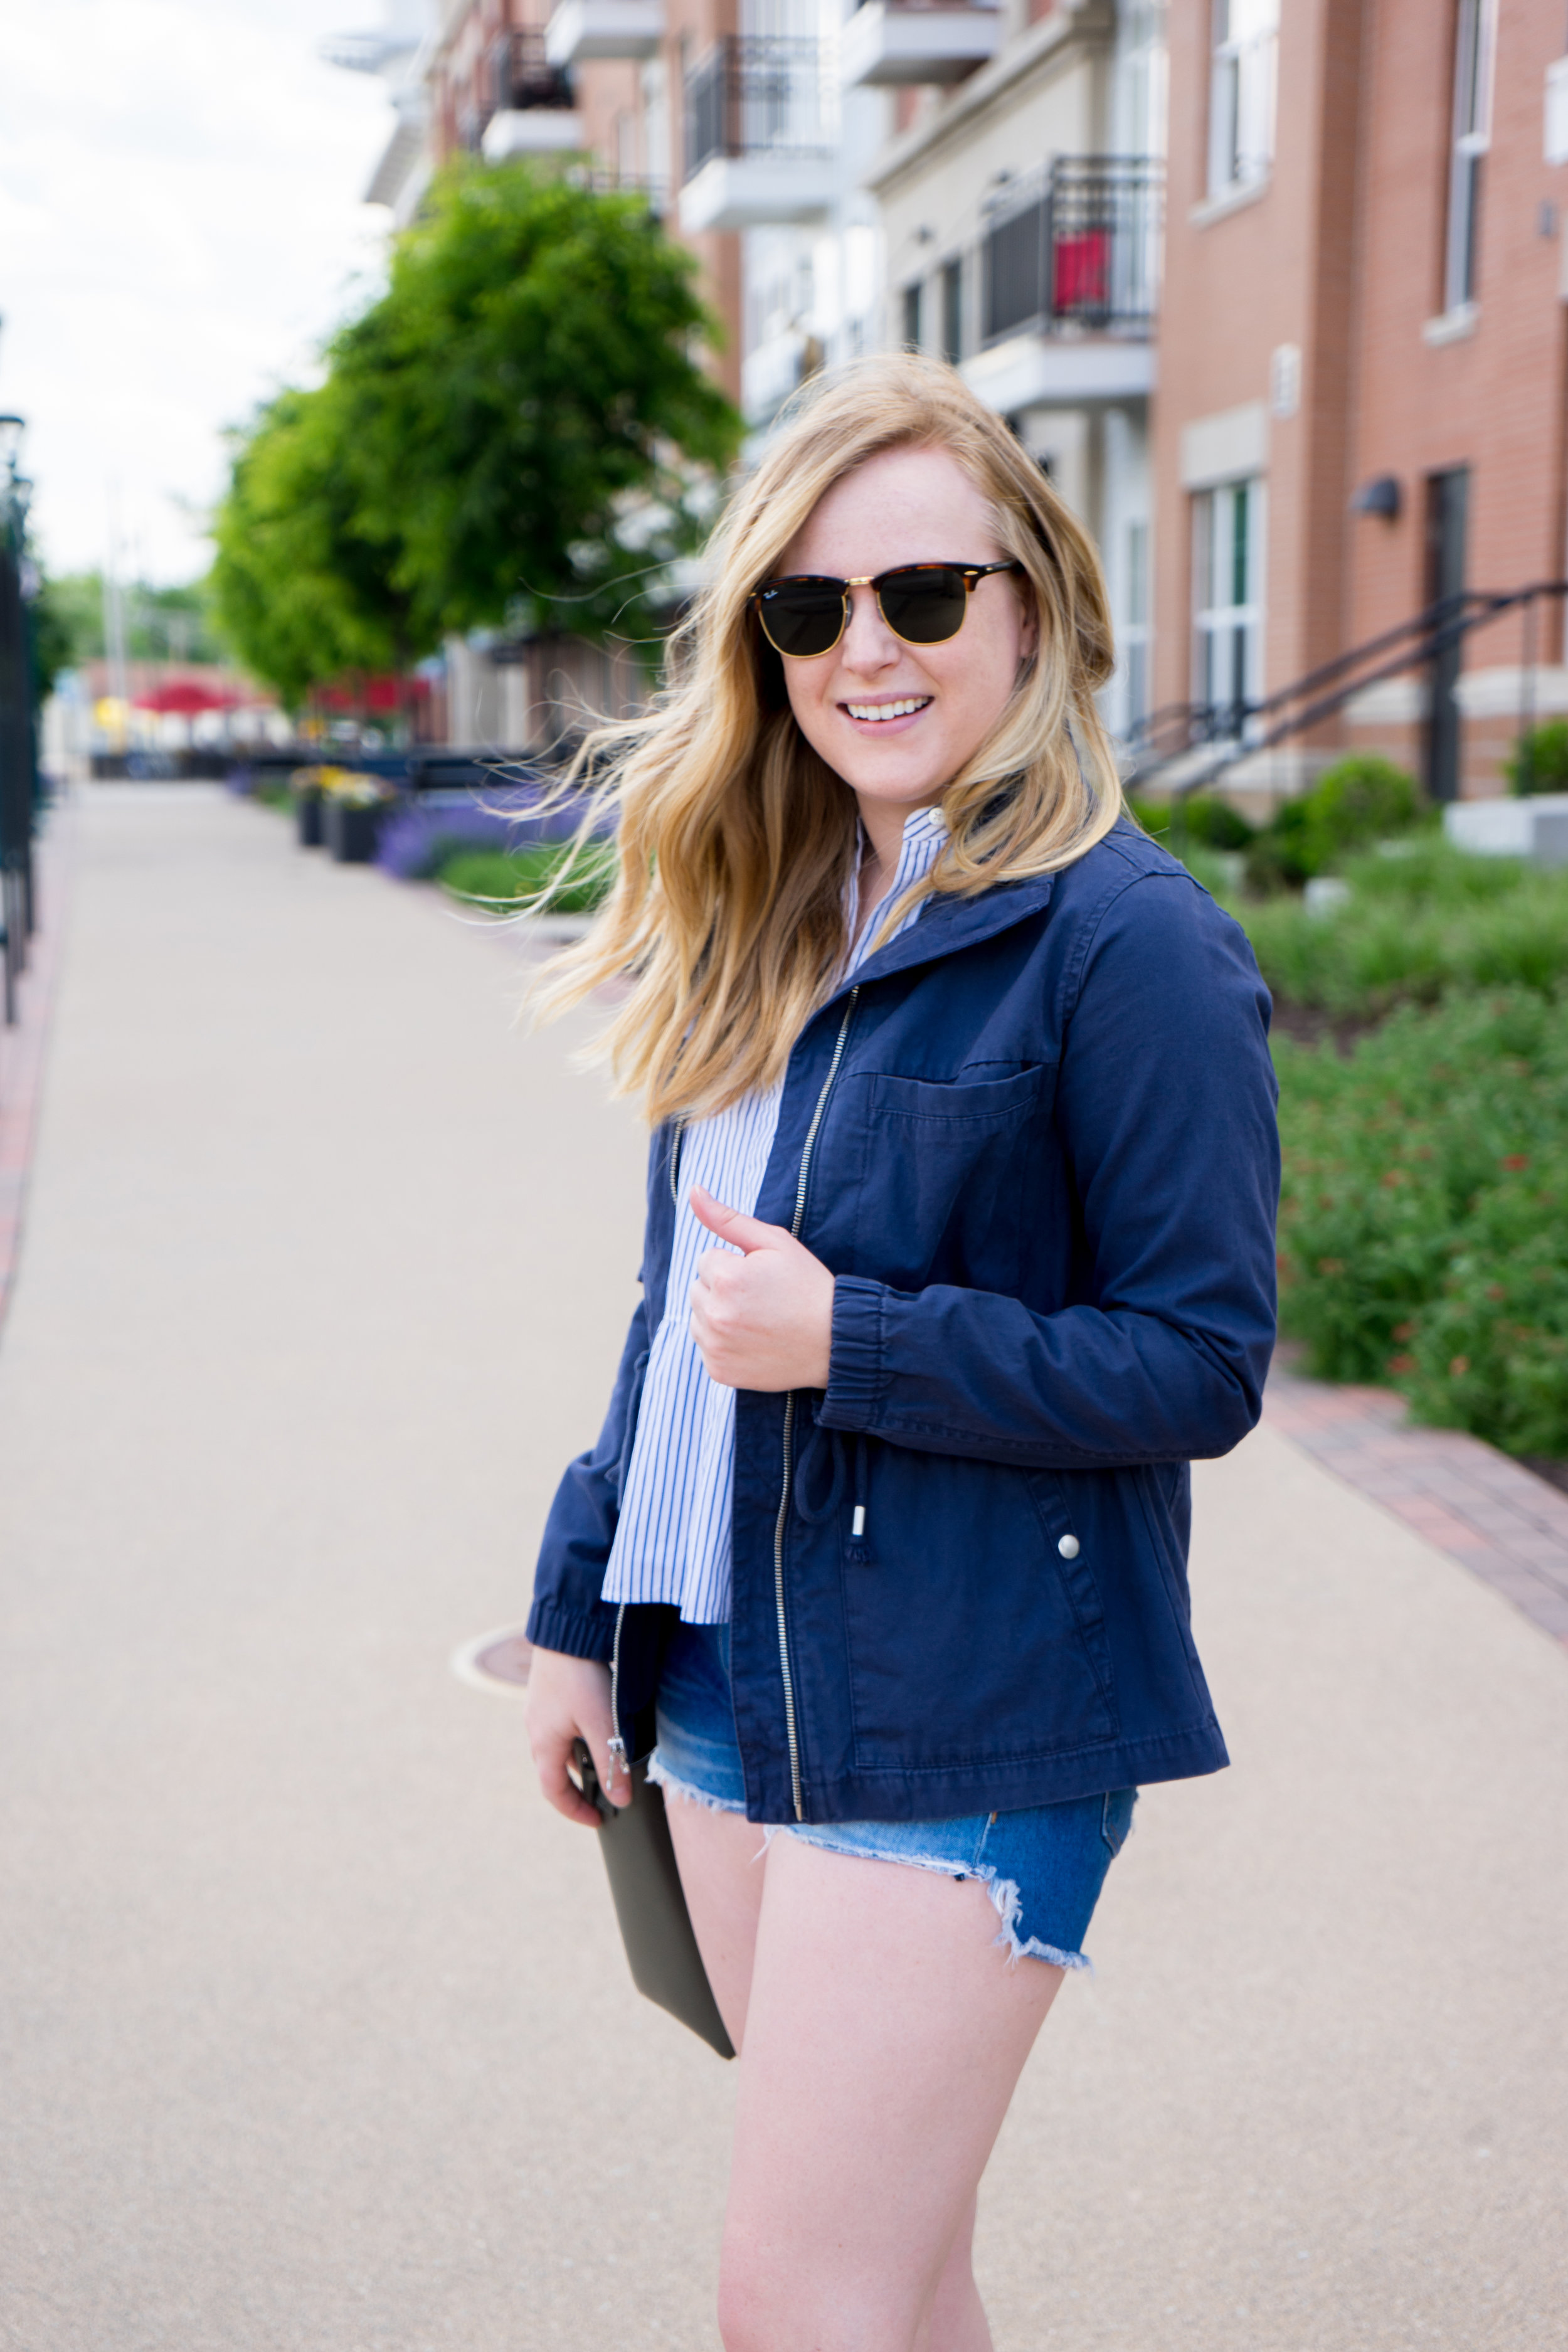 Maggie a la Mode - Old Navy Twill Field Jacket for Women, Madewell Lakeside Peplum Shirt Stripe, Rag & Bone/JEAN The Cutoff Denim Shorts Freeport, Vince Signature Baby Leather East-West Tote, Sam Edelmaln Gigi Sandals, Ray-Ban Classic Clubmaster